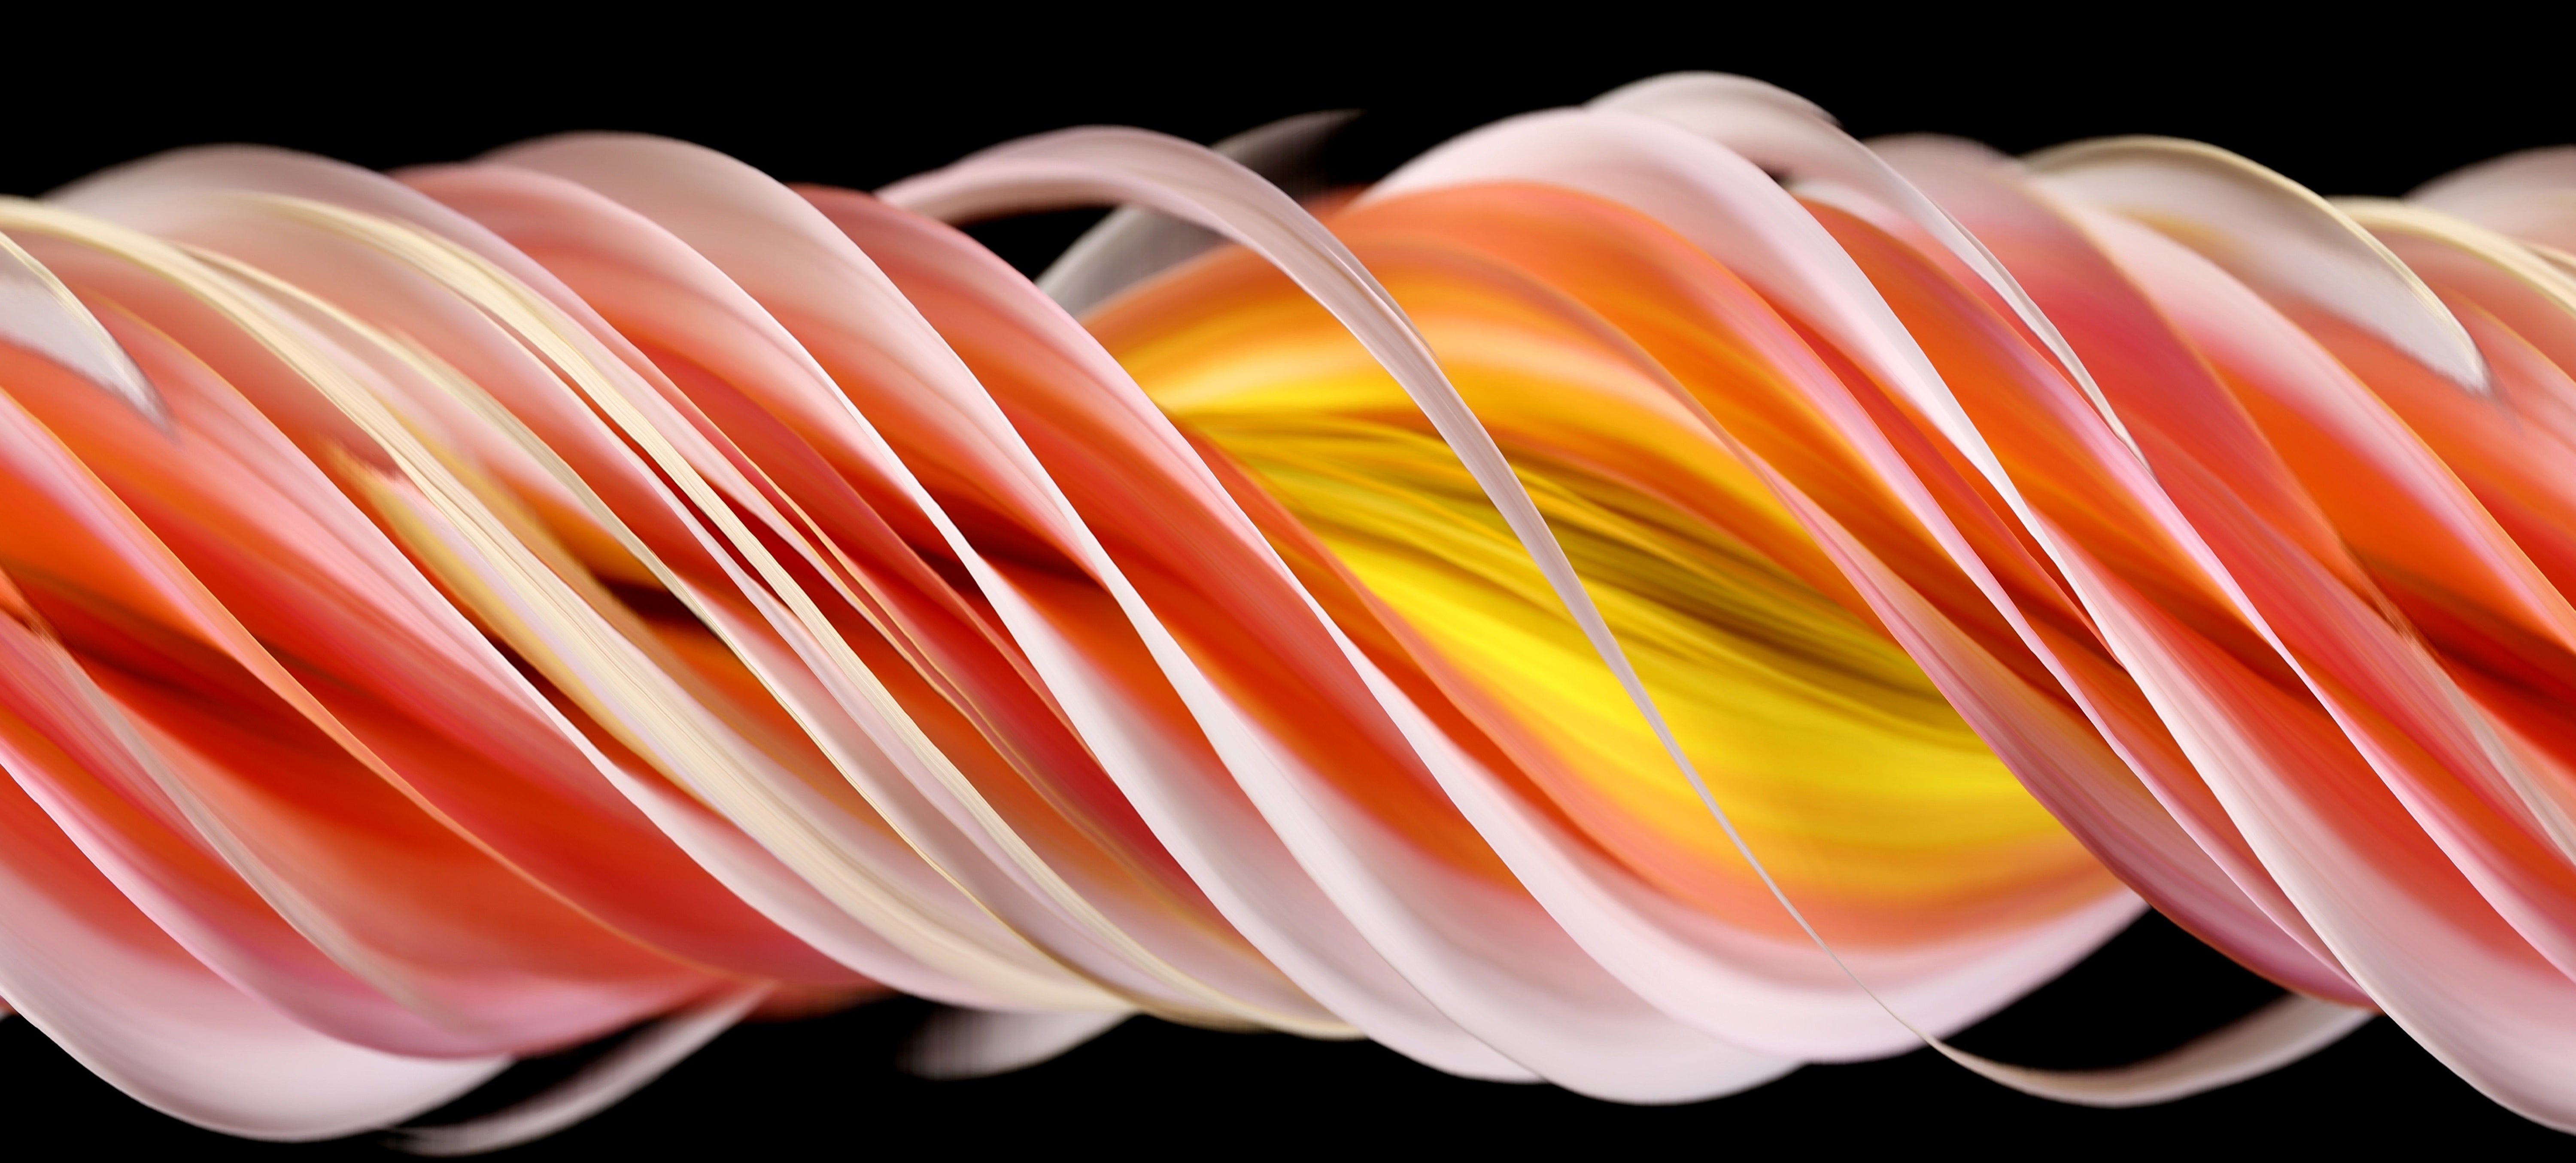 Slit-Scan Technique Presents a Twist on Flowery Photography